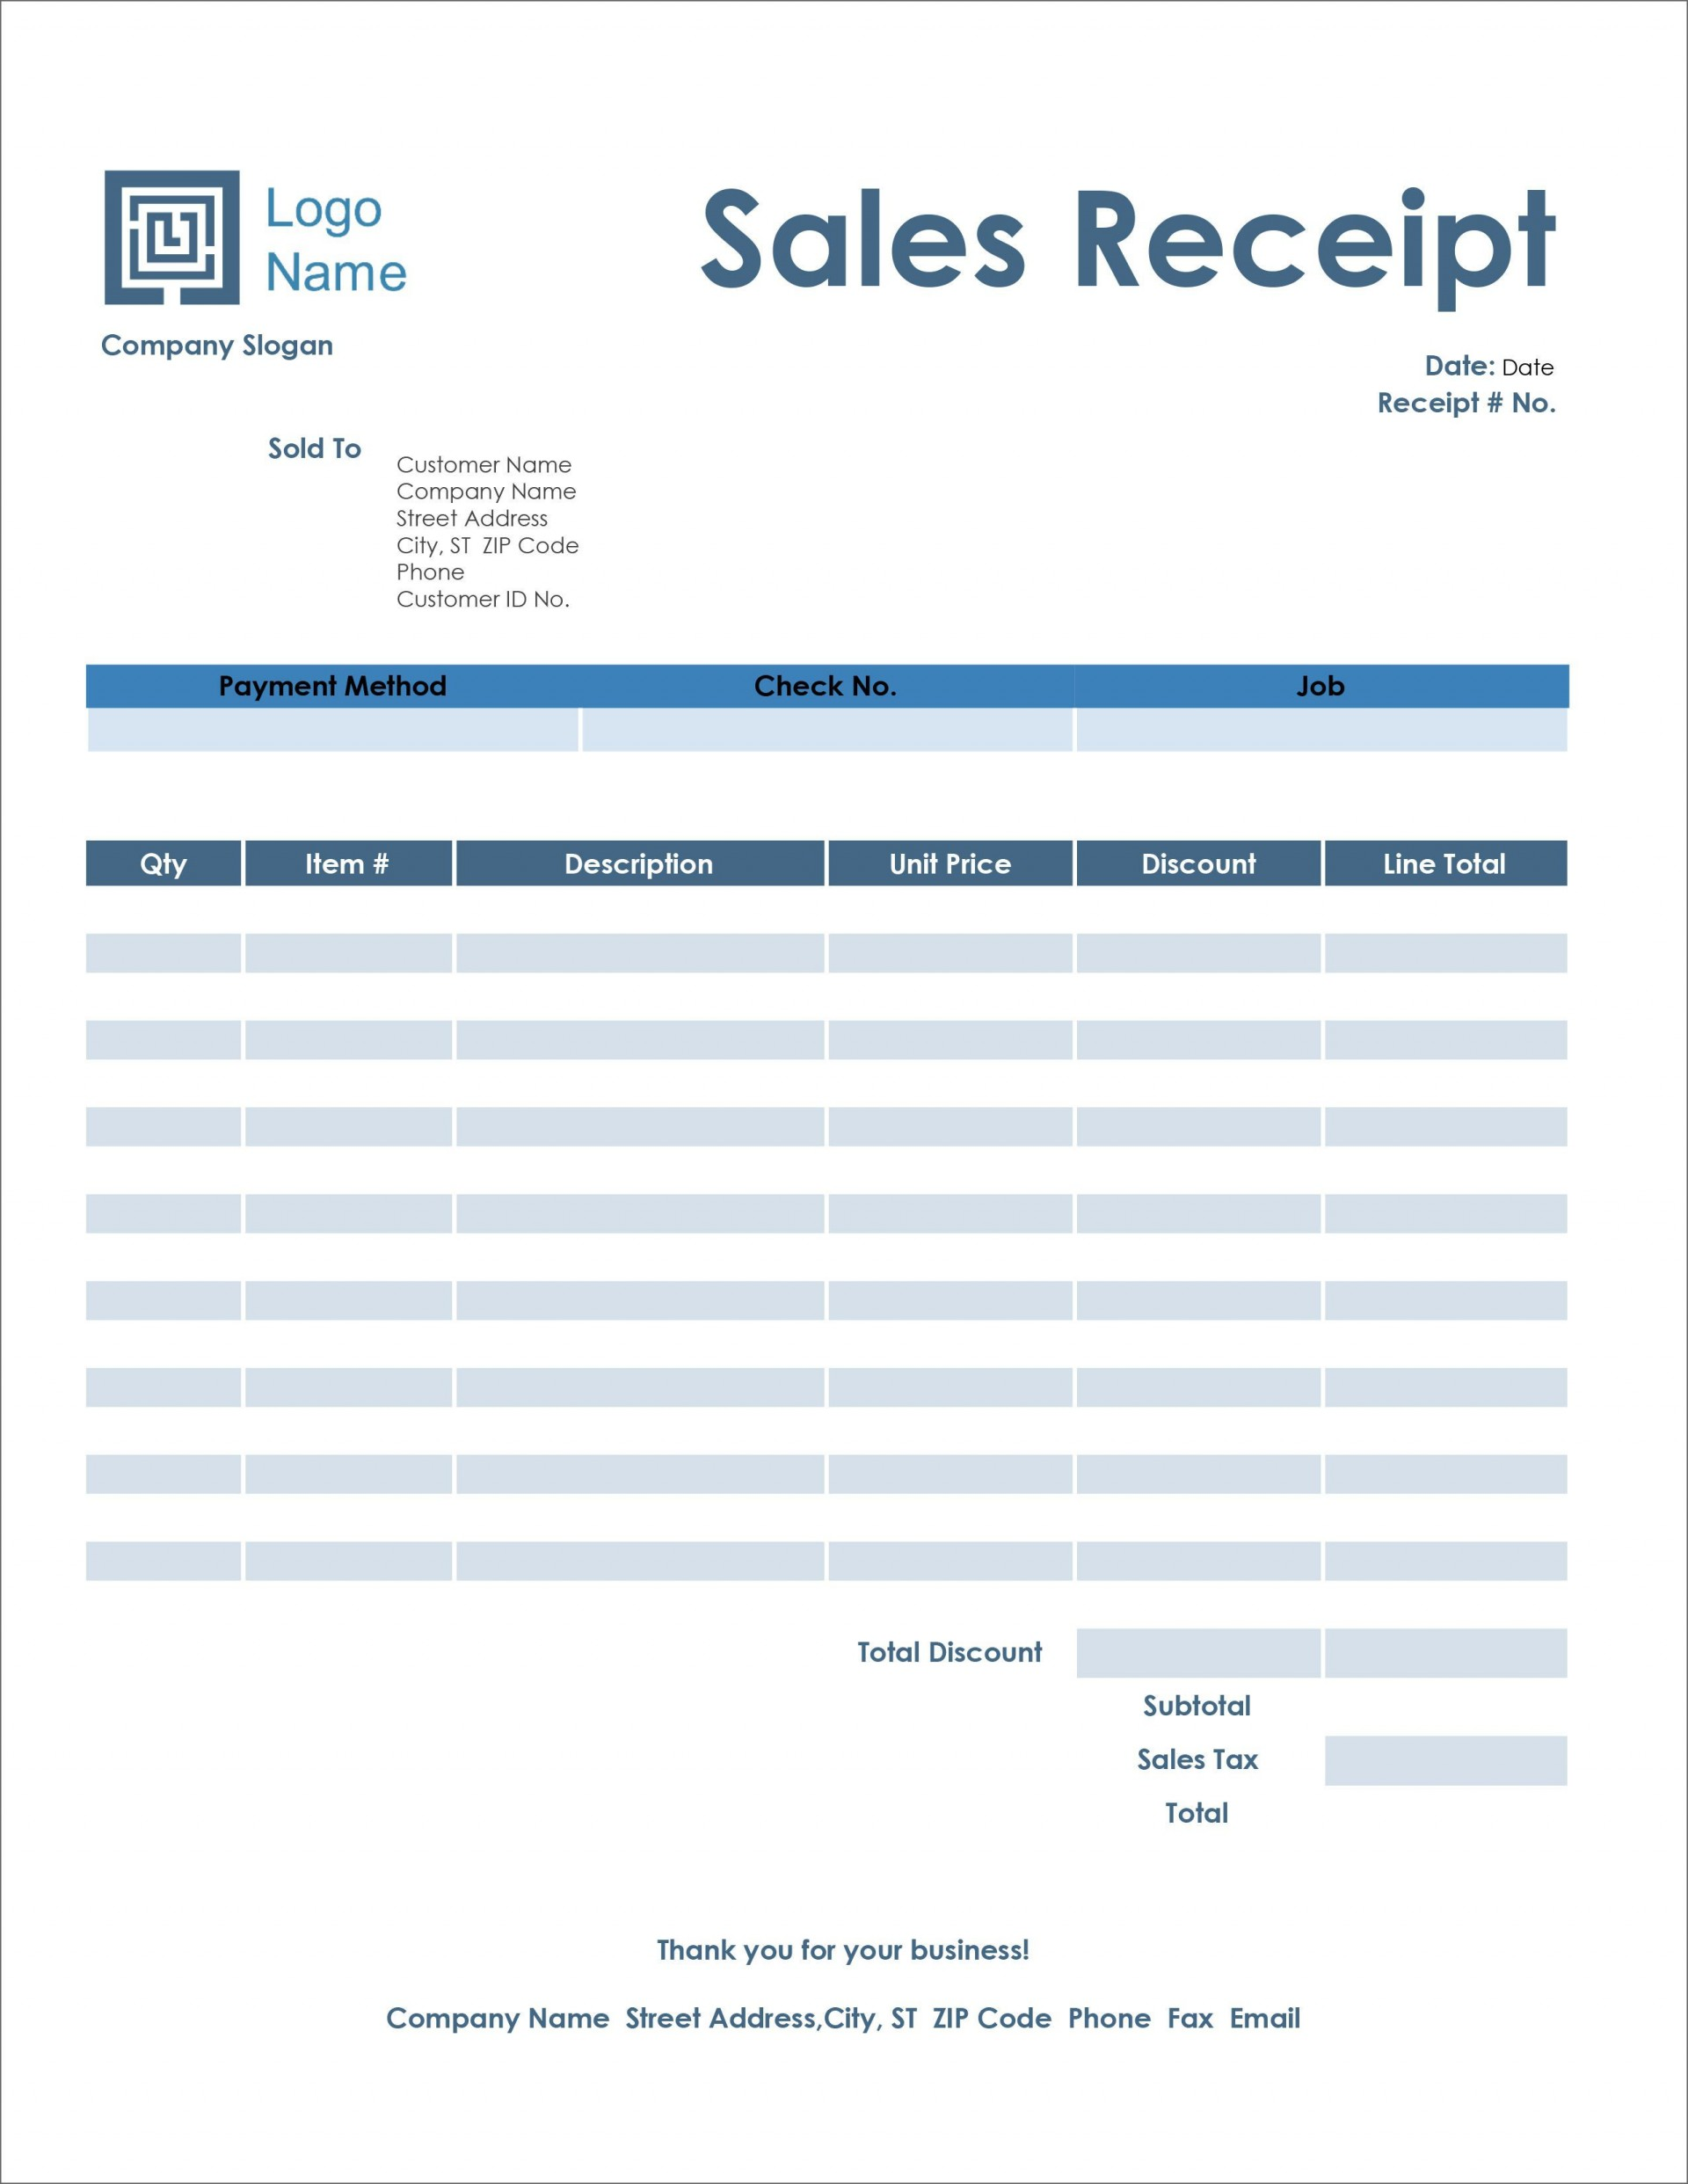 003 Stirring Receipt Template Microsoft Word Highest Clarity  Payment Sample Invoice1920